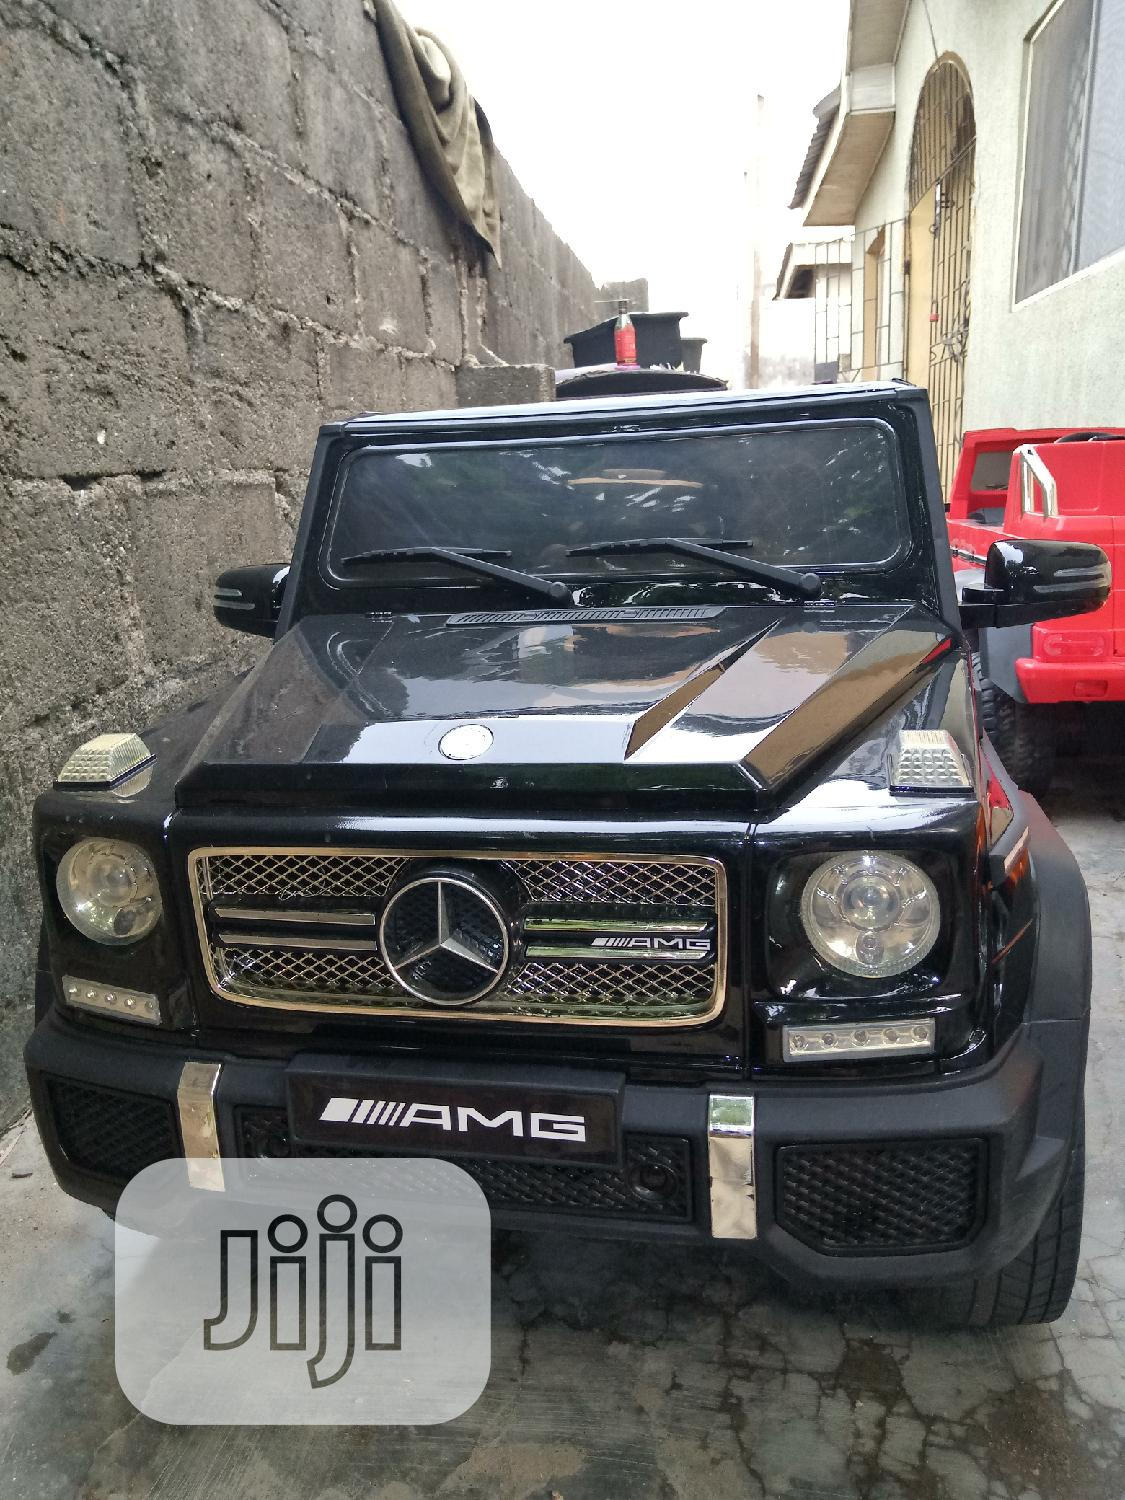 Quality Uk Used Licensed Mercedes Benz G65 AMG G Wagon | Toys for sale in Surulere, Lagos State, Nigeria